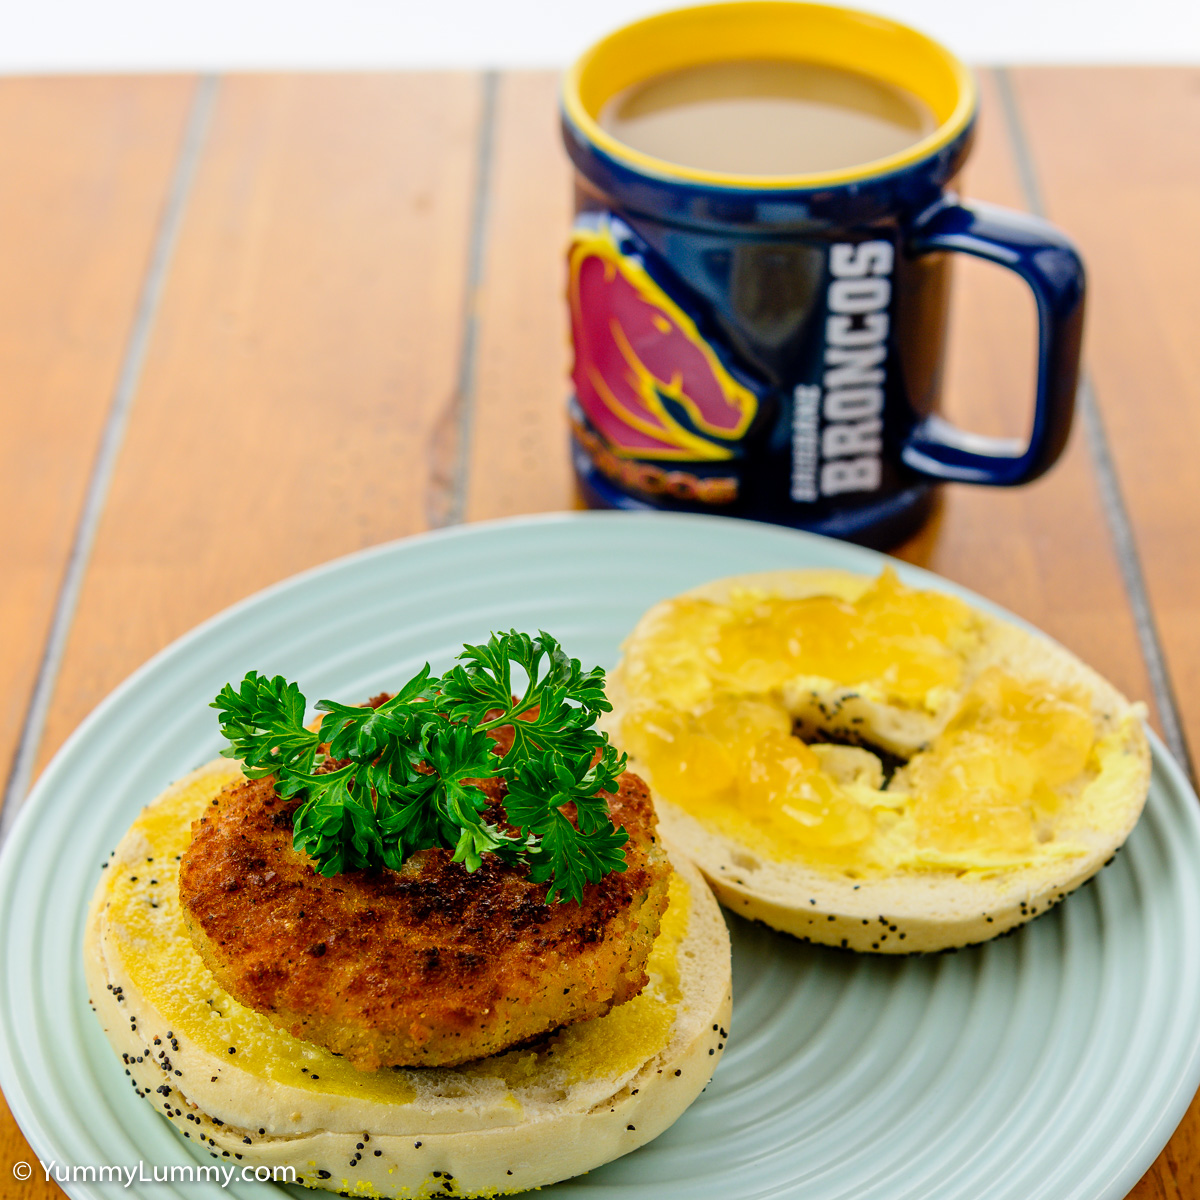 Sunday breakfast. Salmon cake on a poppyseed bagel with marmalade and a coffee.